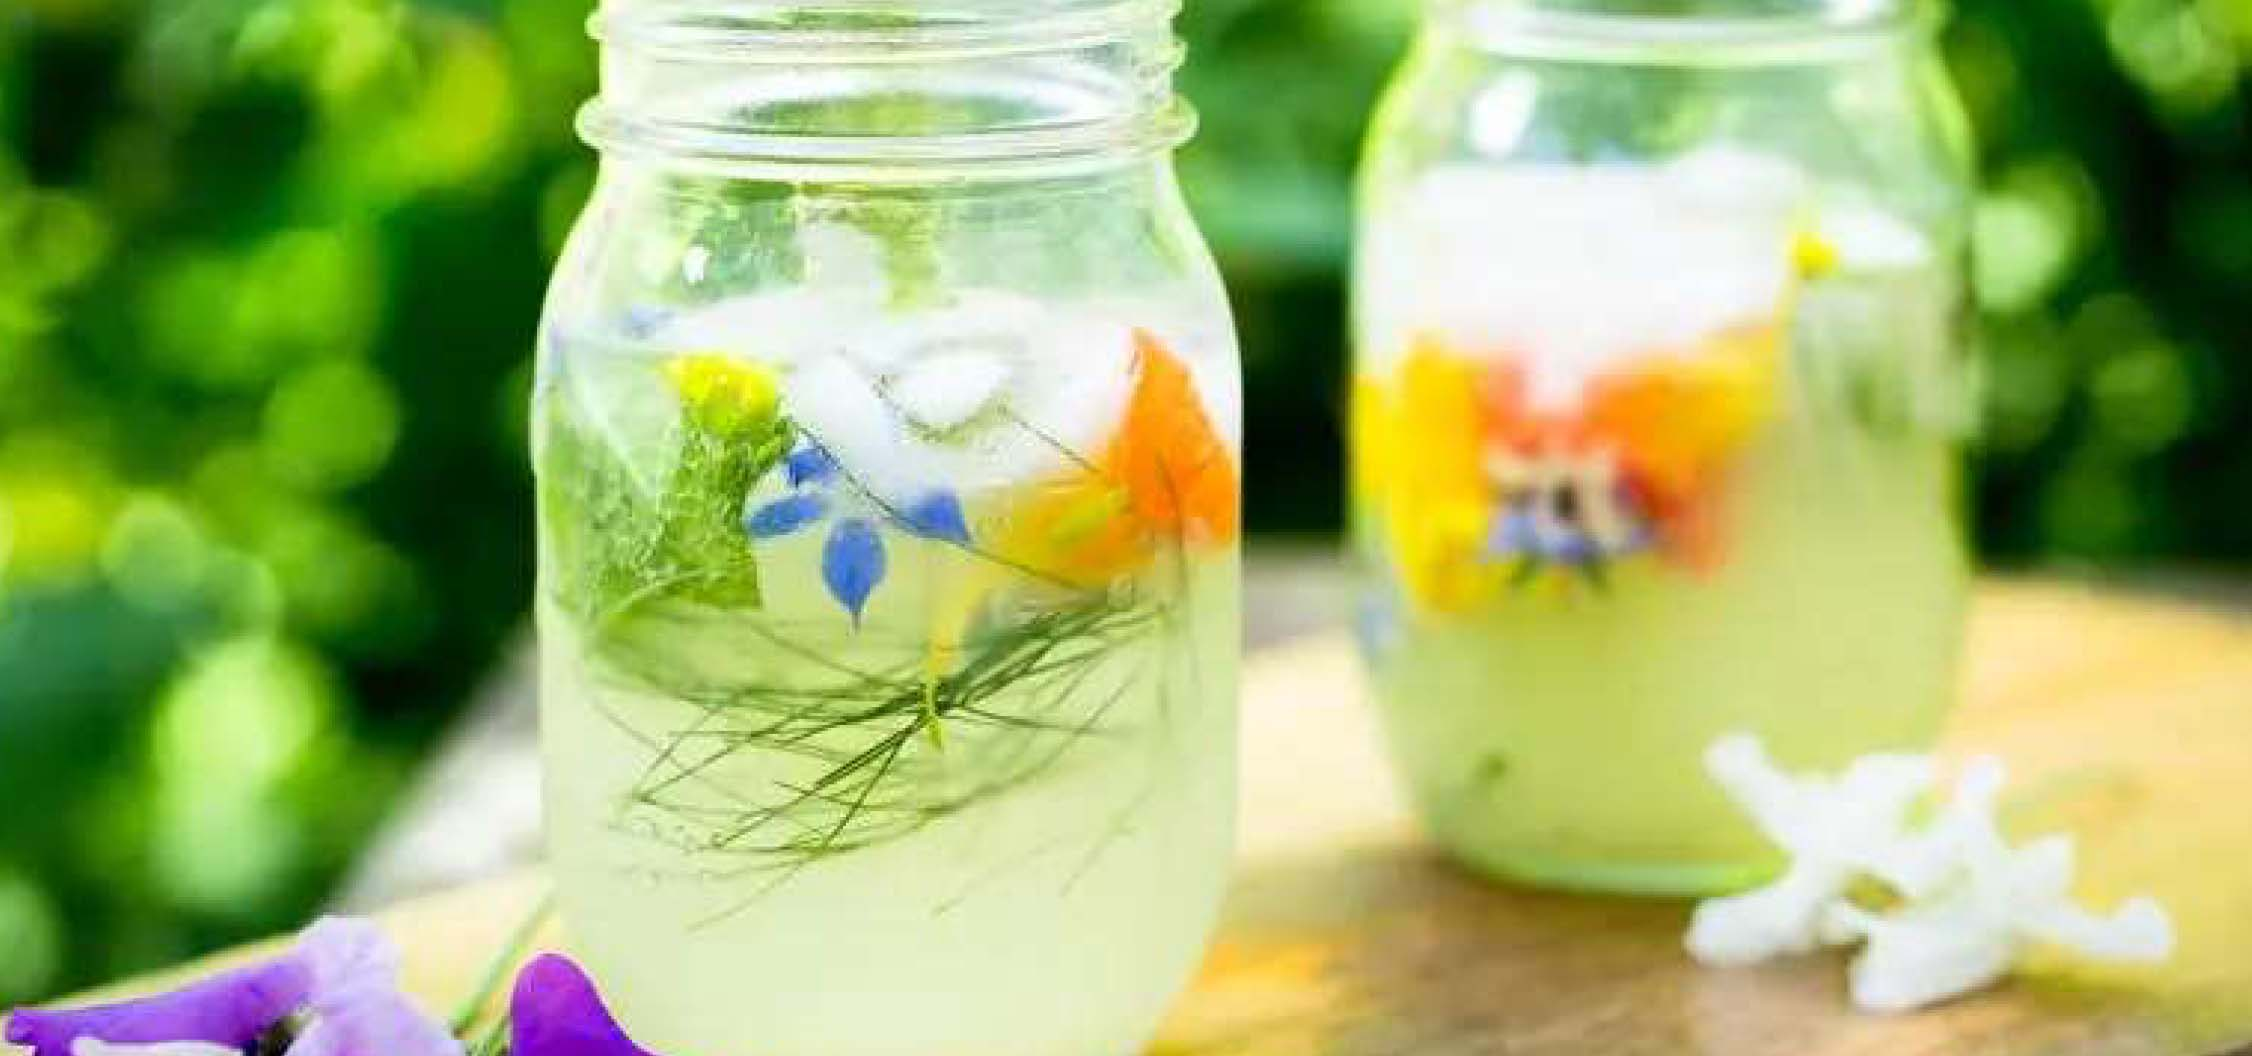 Two drinks mixed in mason jars, garnished with spring flowers.